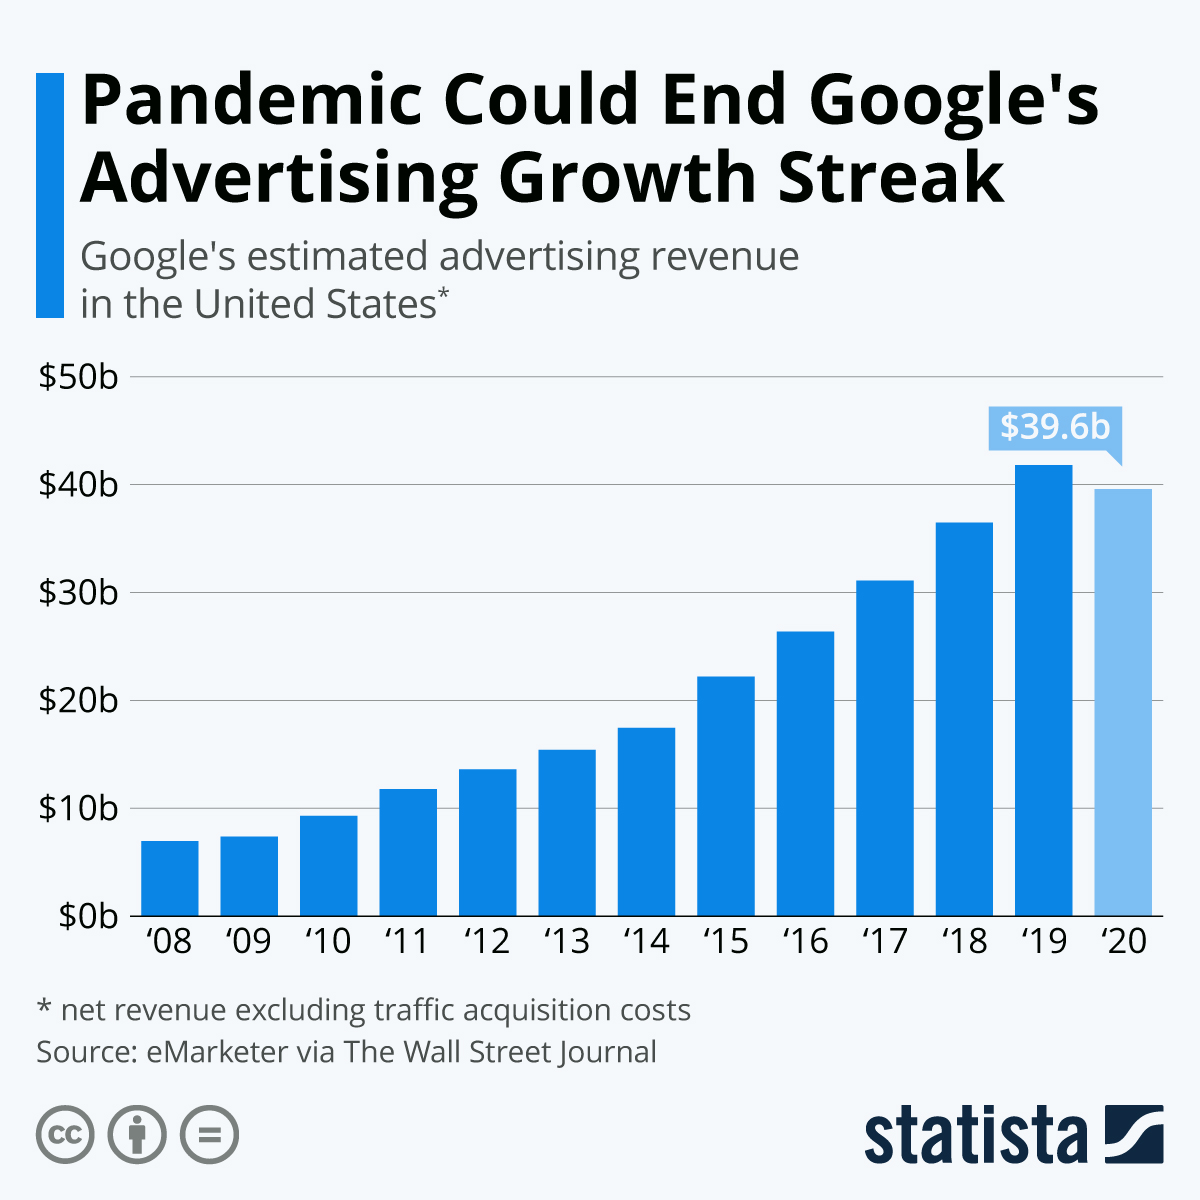 Pandemic Could End Google's Advertising Growth Streak #infographic